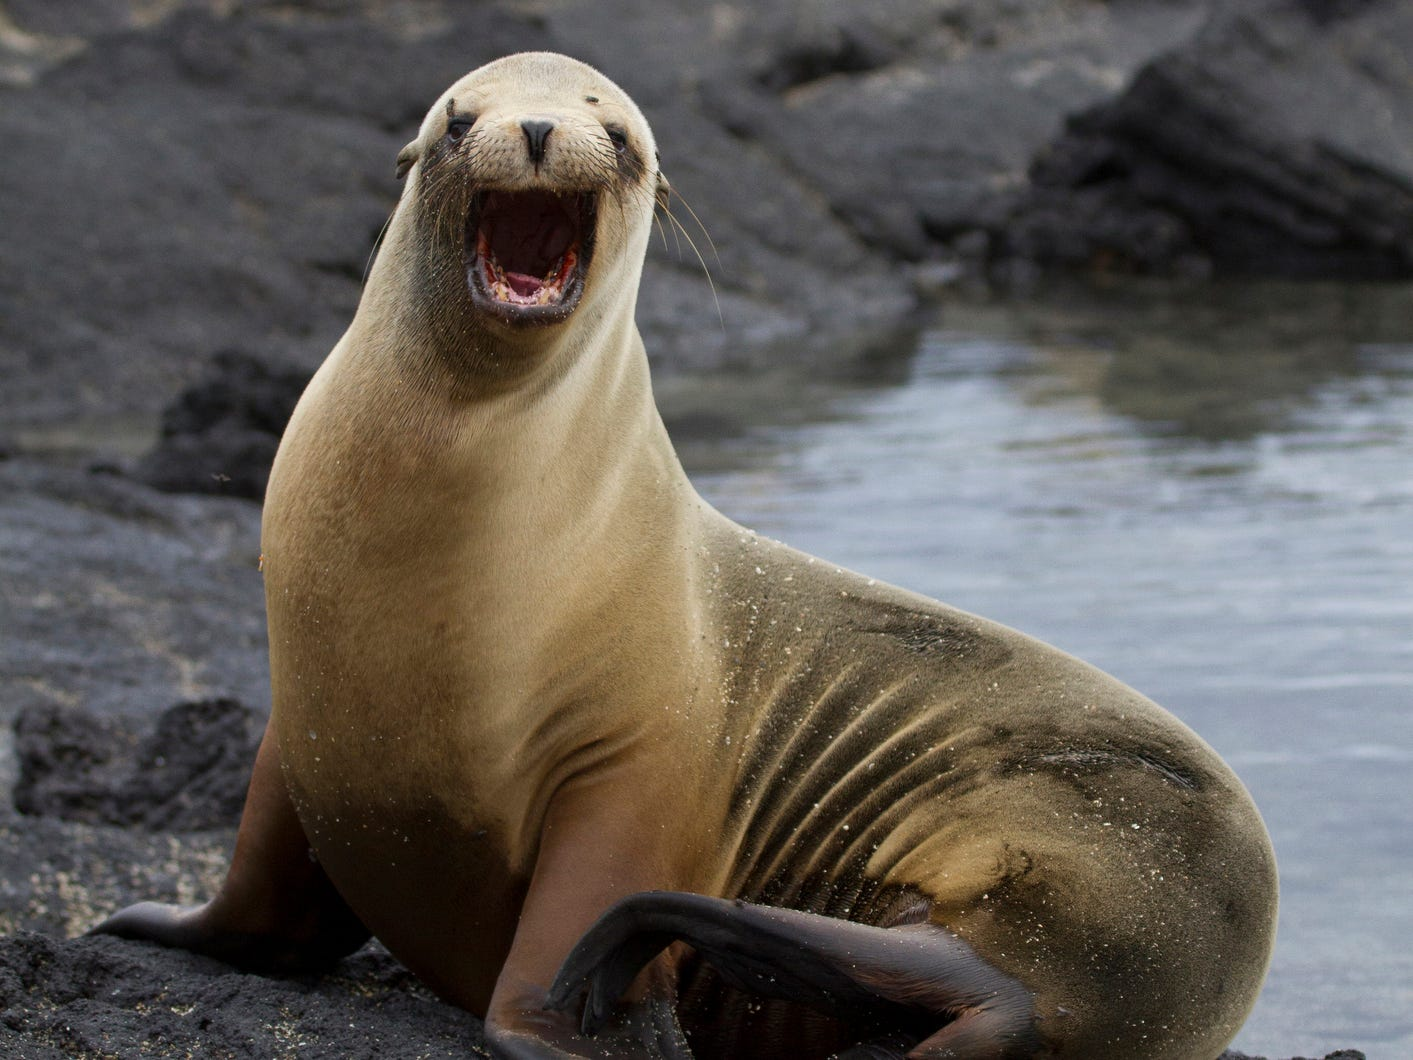 A sea lion in the Galapagos Islands, Ecuador.